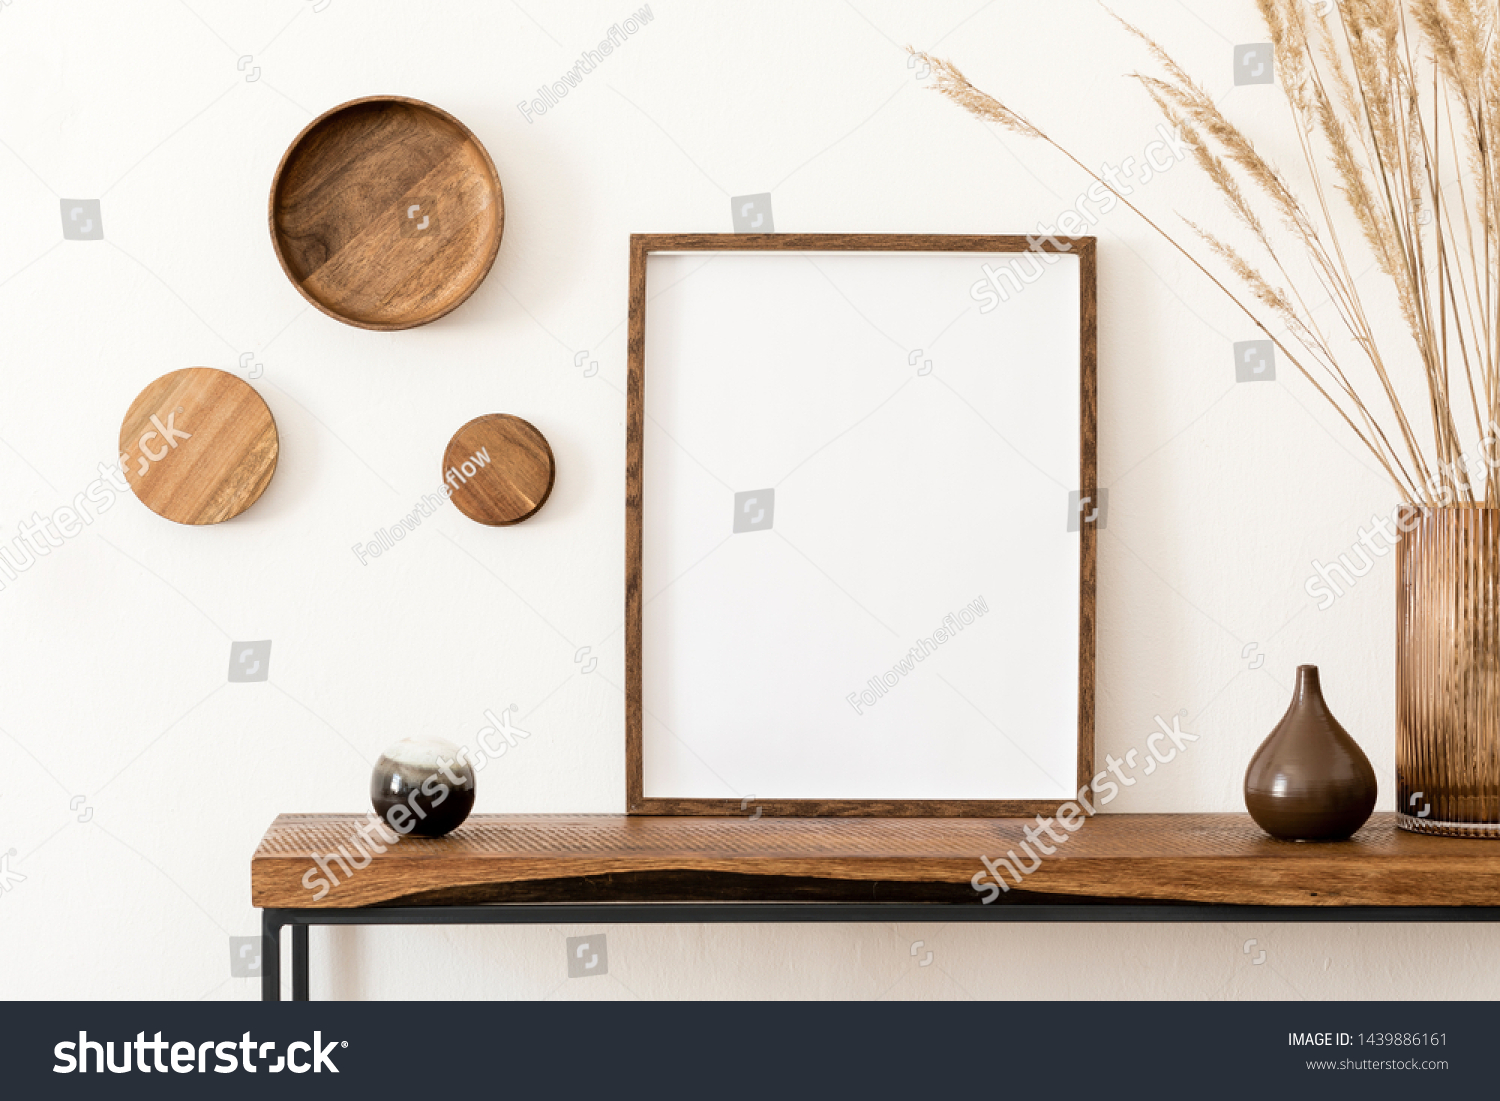 Design scandinavian interior of living room with wooden console, rings on the wall, mock up poster frame, flowers in vase and elegant personal accessories. Modern home decor. Template. #1439886161